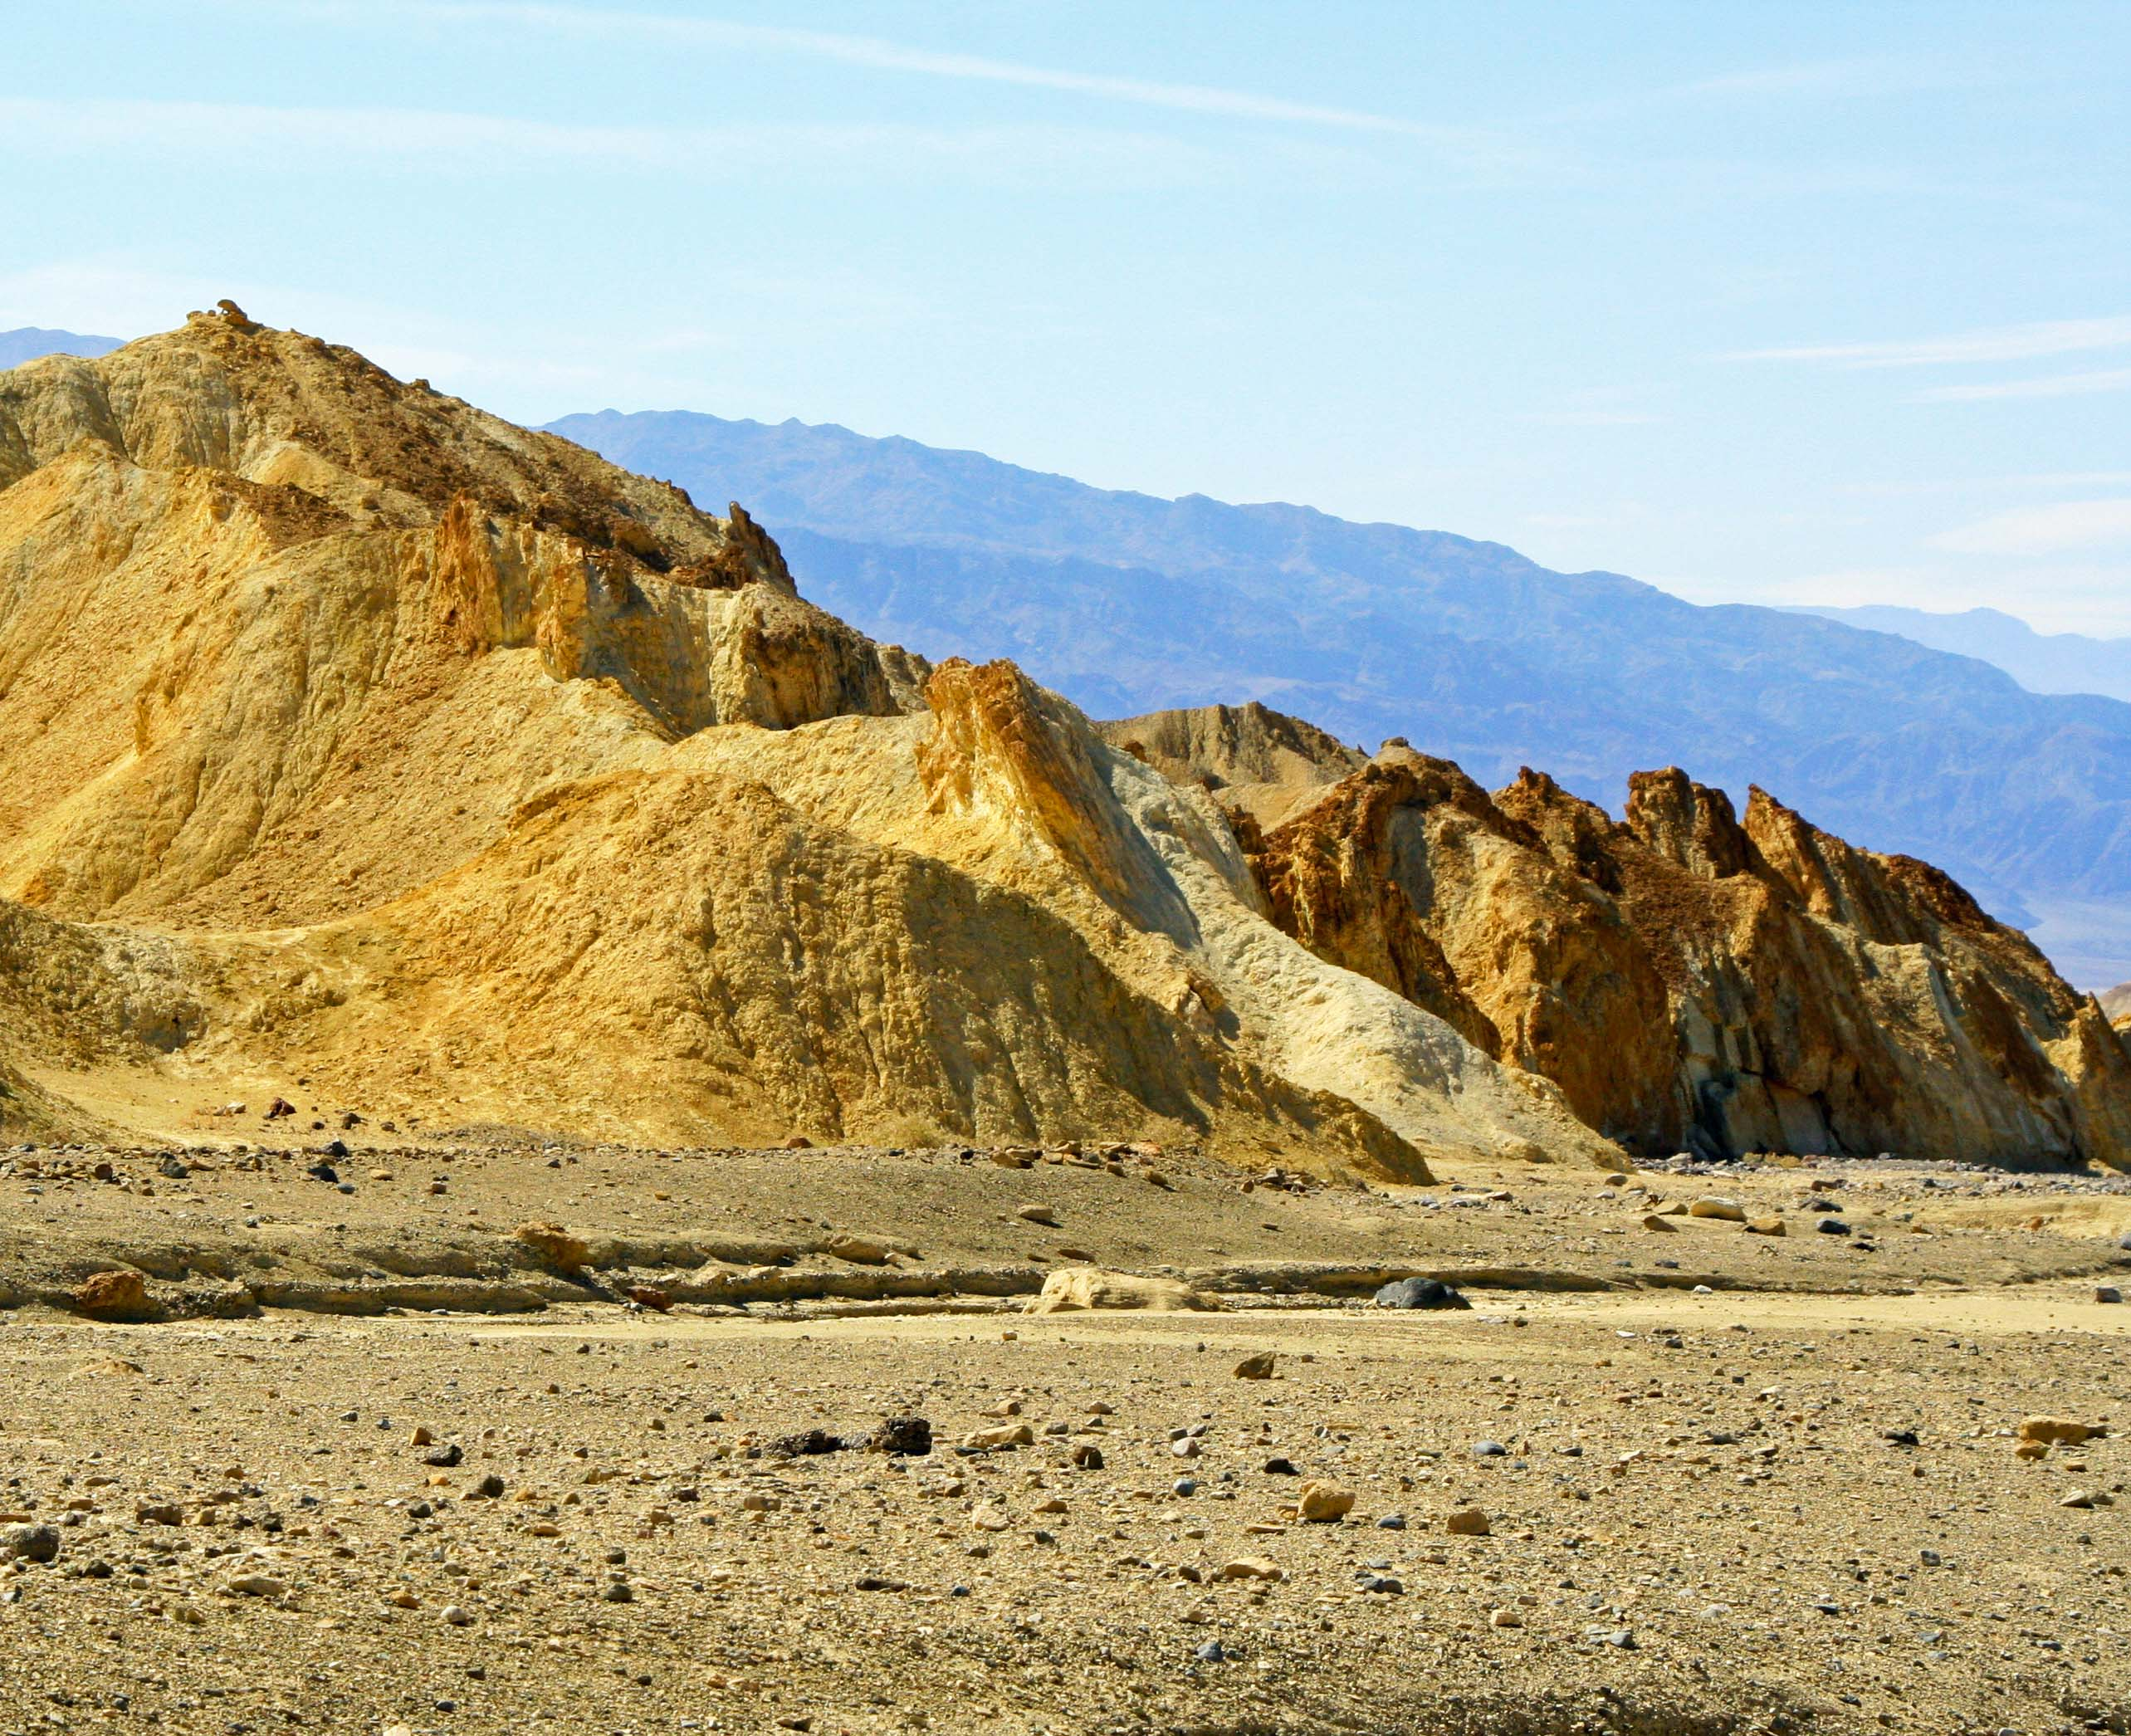 Distant mountains appear purple in Twenty Mule Team Canyon, Death Valley.